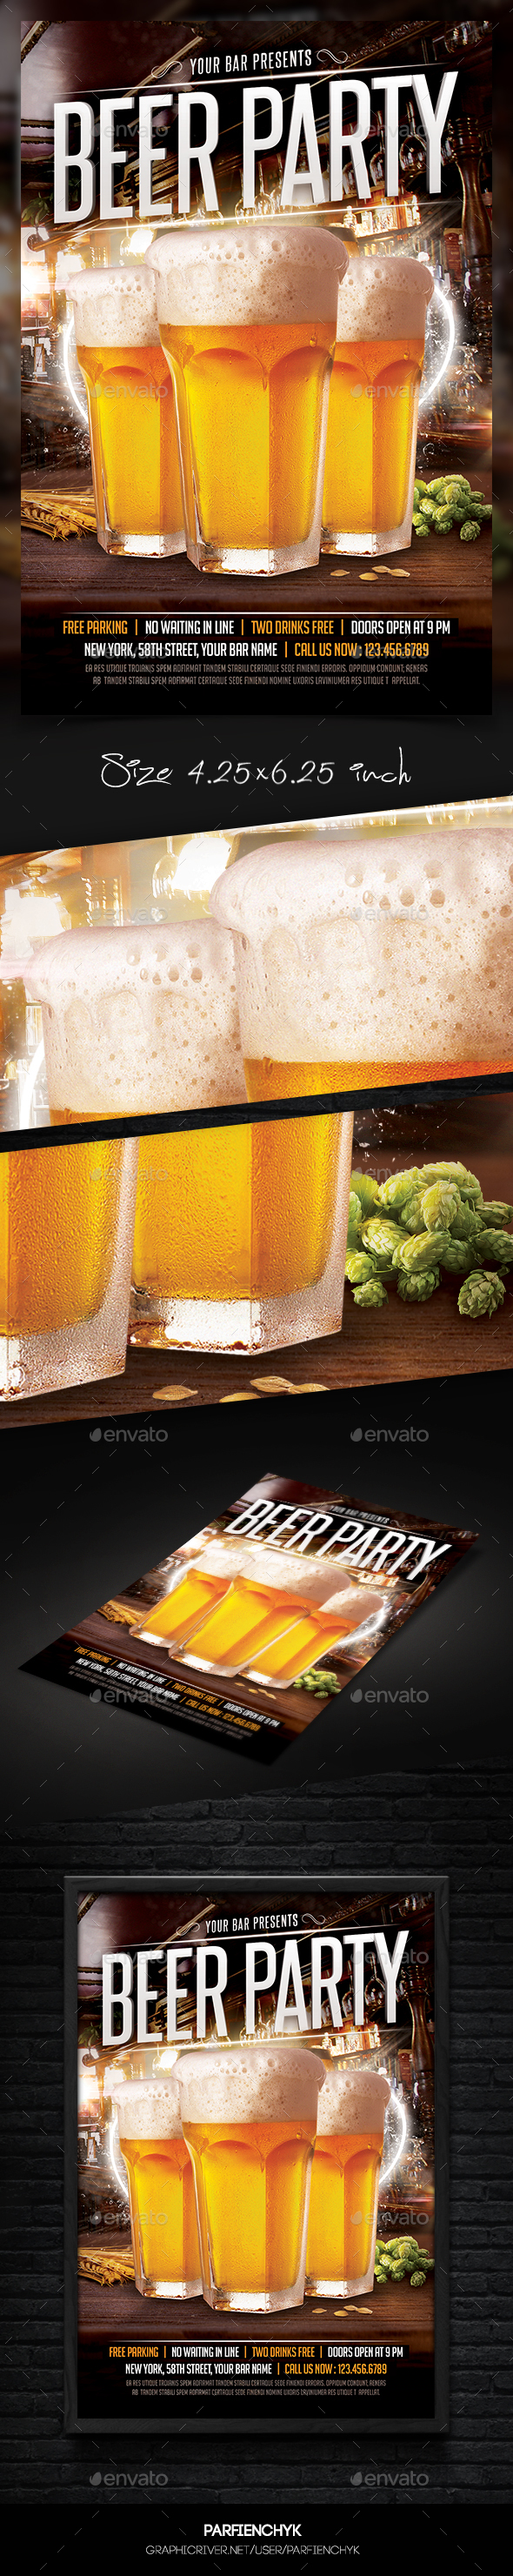 Beer Party Flyer Template - Events Flyers